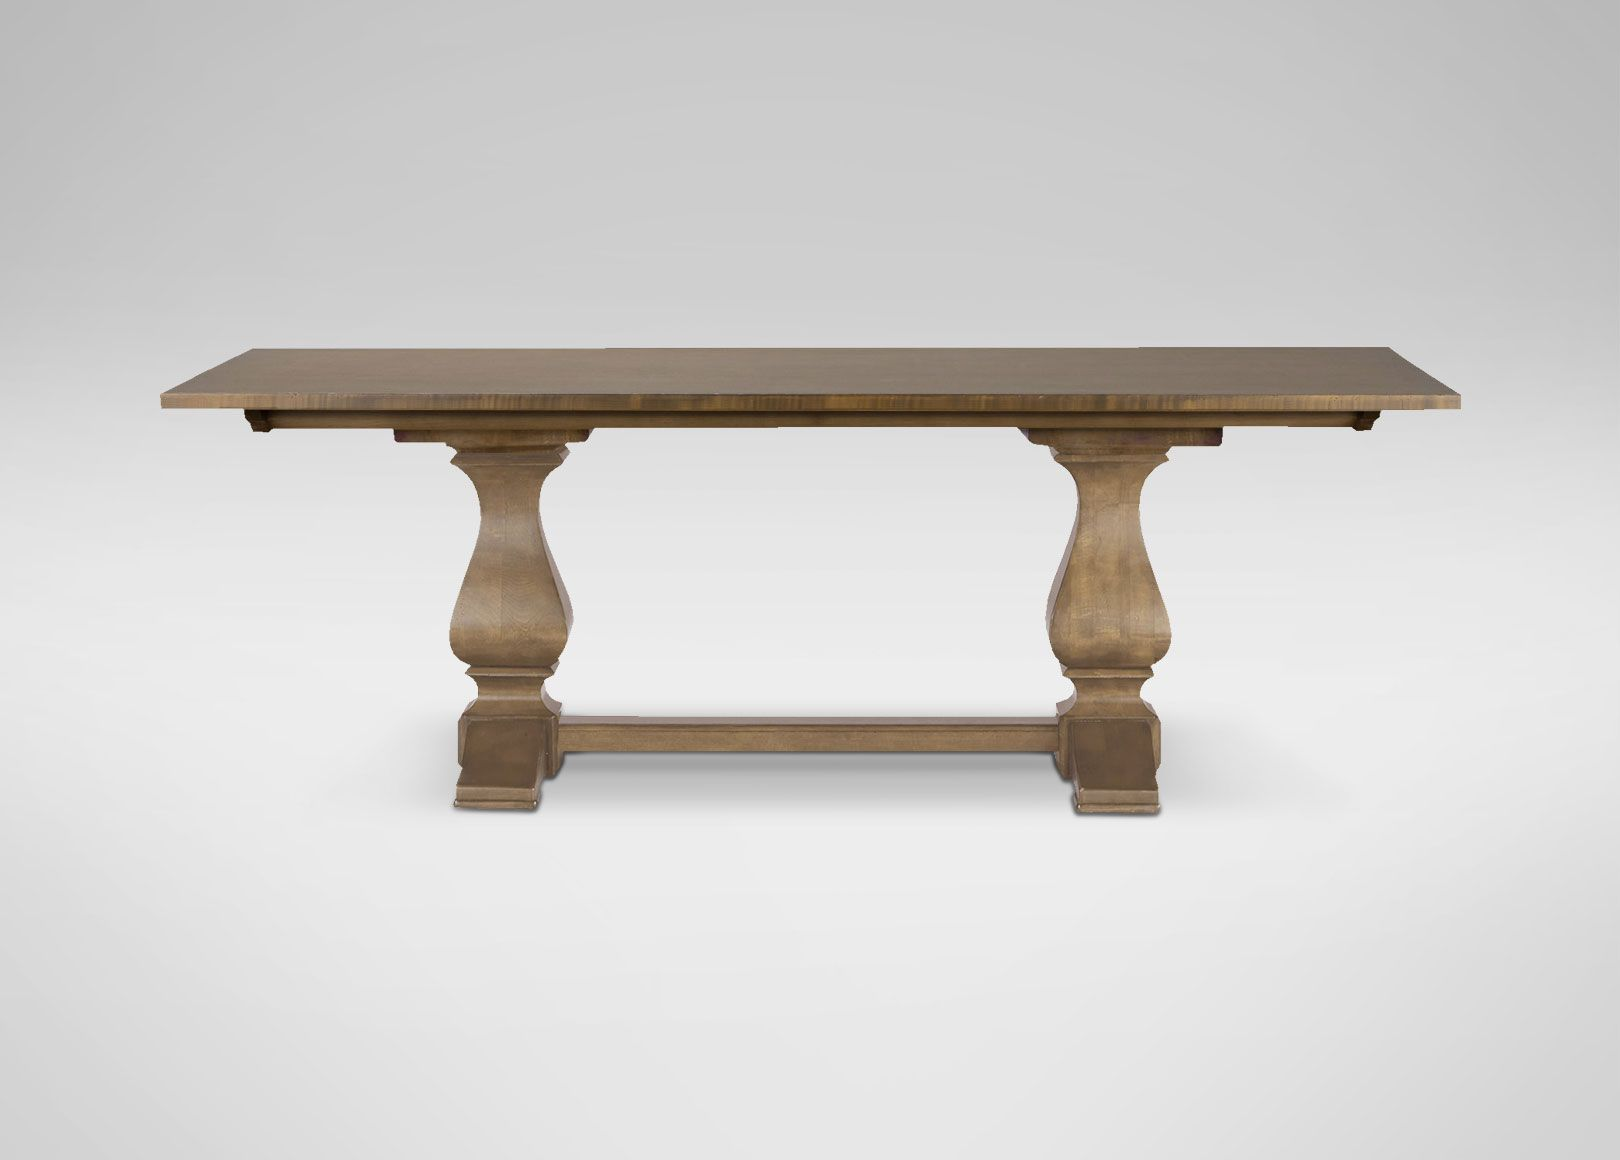 Cameron Dining Table  Ethan Allen  Our Next Step In Life Extraordinary Ethan Allen Dining Room Tables Inspiration Design